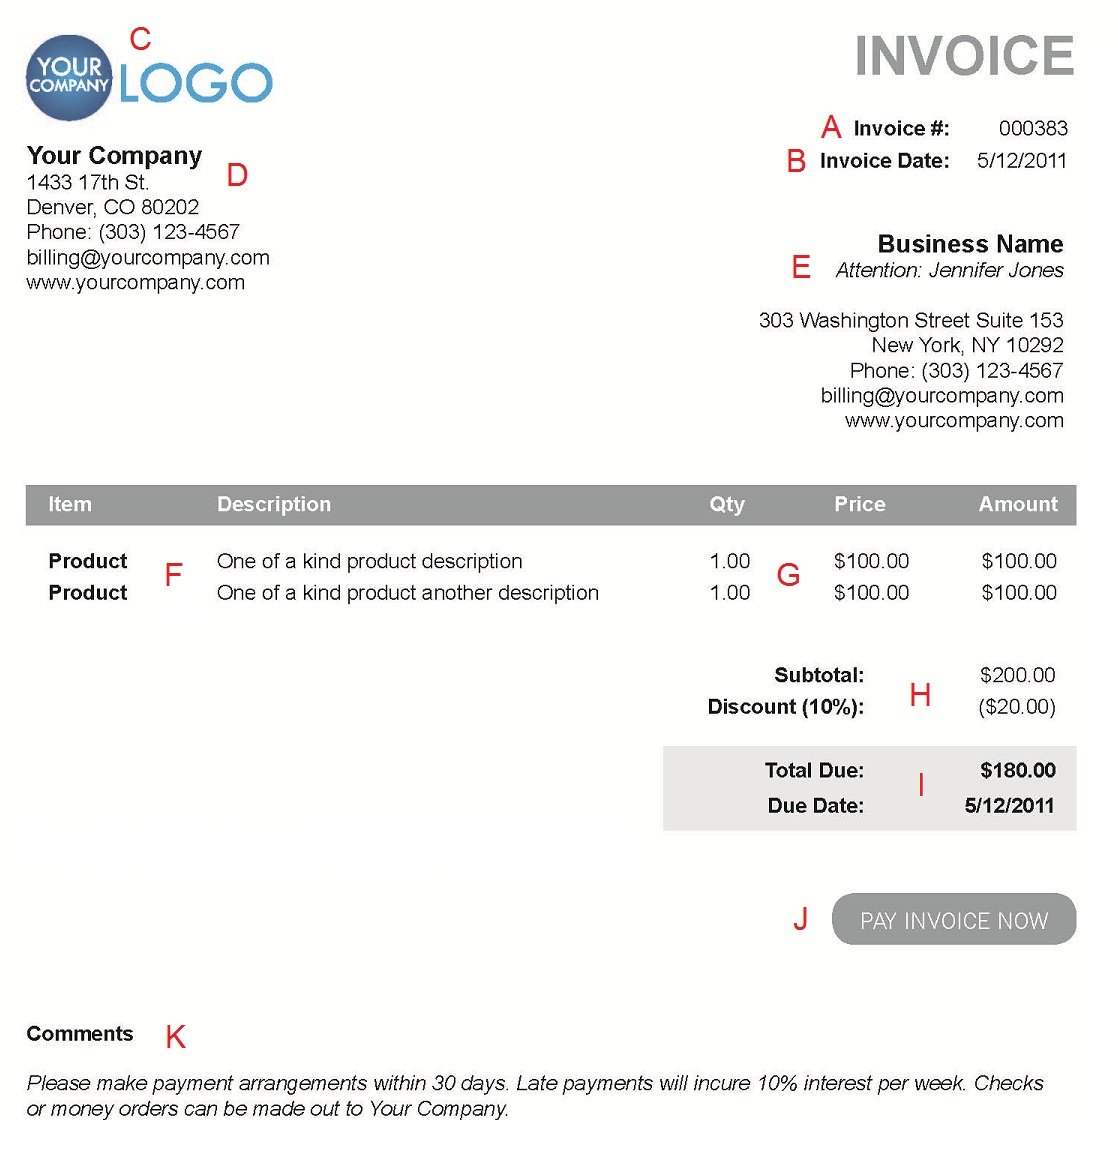 Coolmathgamesus  Fascinating The  Different Sections Of An Electronic Payment Invoice With Handsome A  With Adorable Copy Of Receipts Also Goodwill Tax Receipt Form In Addition Rent Receipts Format And Best Receipt Scanner App Android As Well As Sample Receipt For Services Rendered Additionally Hertz Find Receipt From Paysimplecom With Coolmathgamesus  Handsome The  Different Sections Of An Electronic Payment Invoice With Adorable A  And Fascinating Copy Of Receipts Also Goodwill Tax Receipt Form In Addition Rent Receipts Format From Paysimplecom